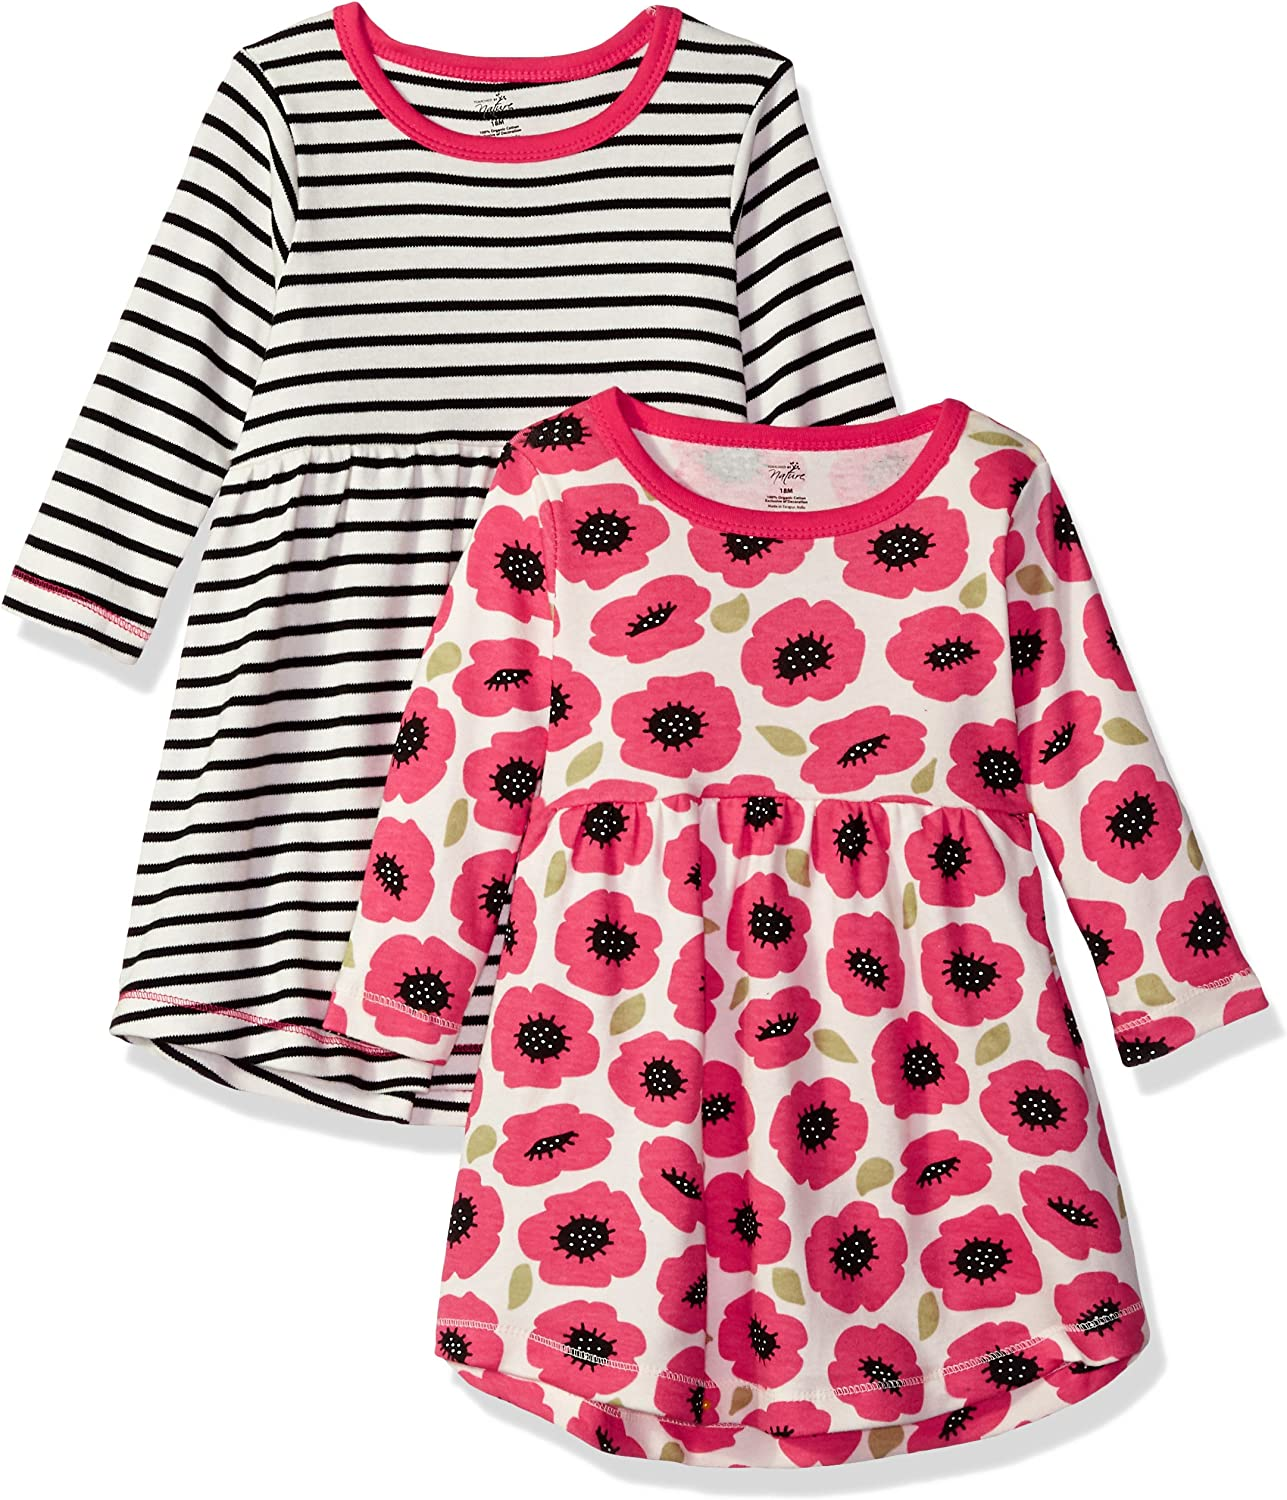 Touched by Nature Girls Baby, Kids, Youth Organic Cotton Dresses